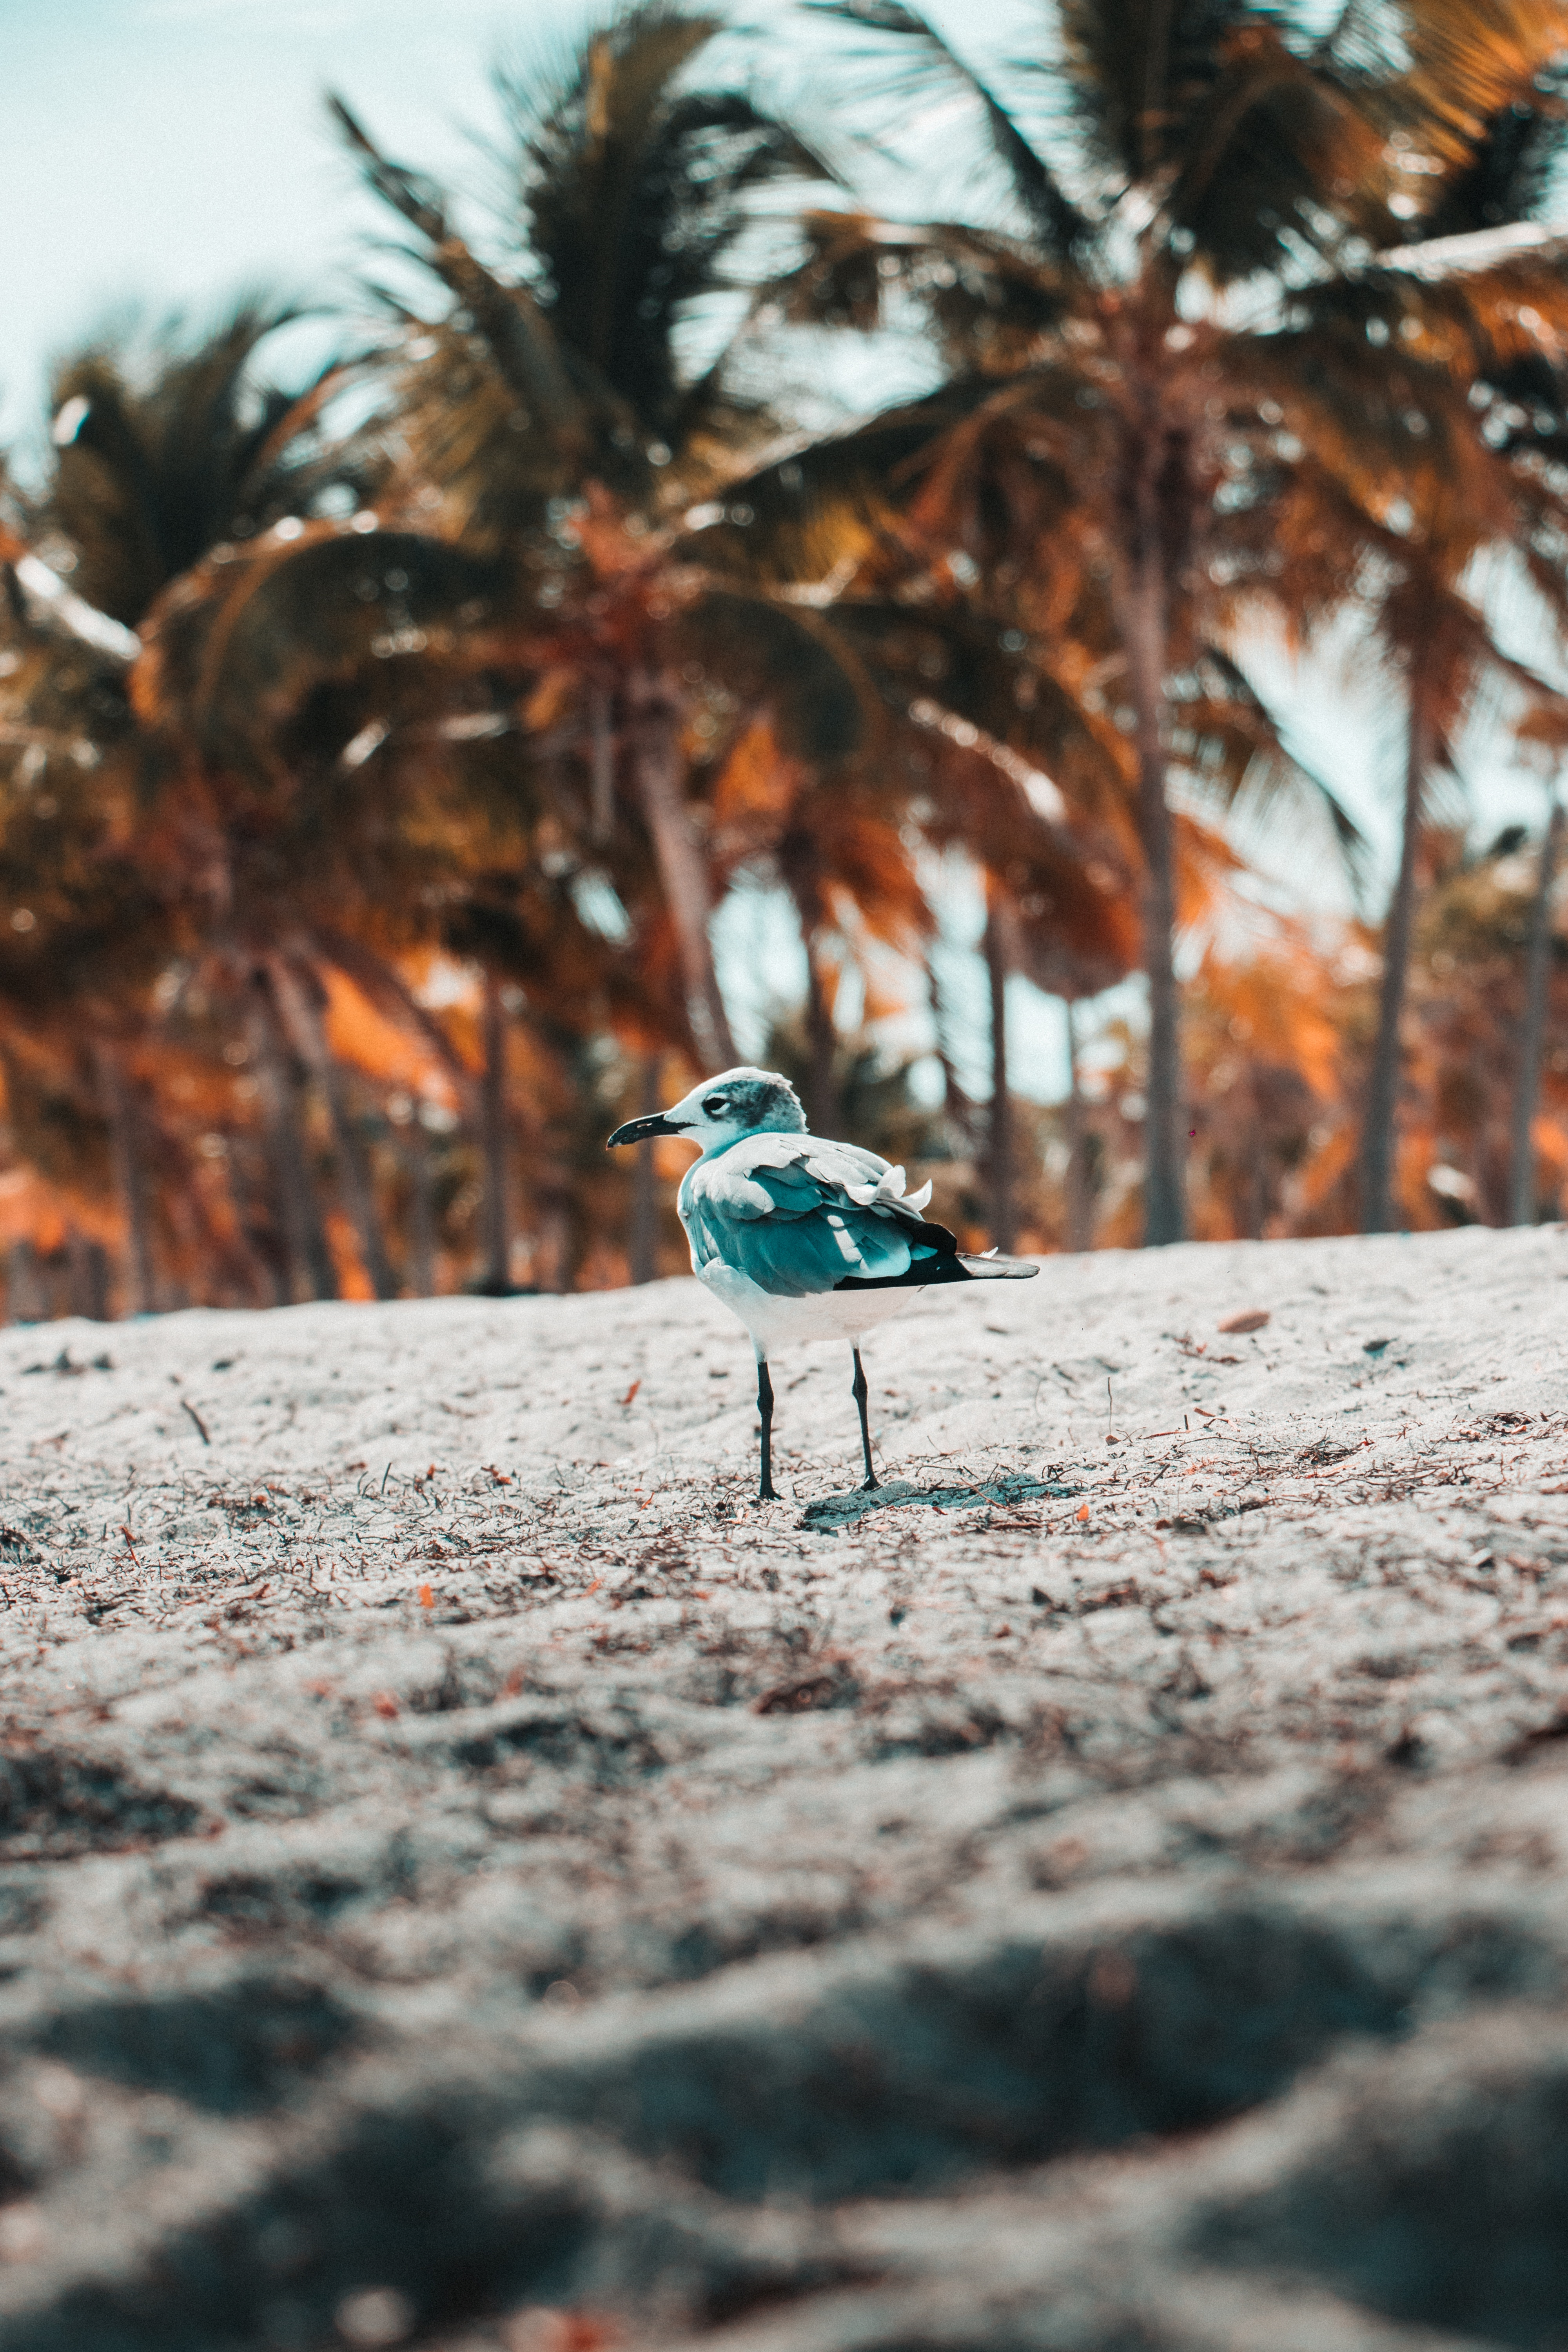 53365 download wallpaper Animals, Gull, Seagull, Bird, Sand, Blur, Smooth screensavers and pictures for free